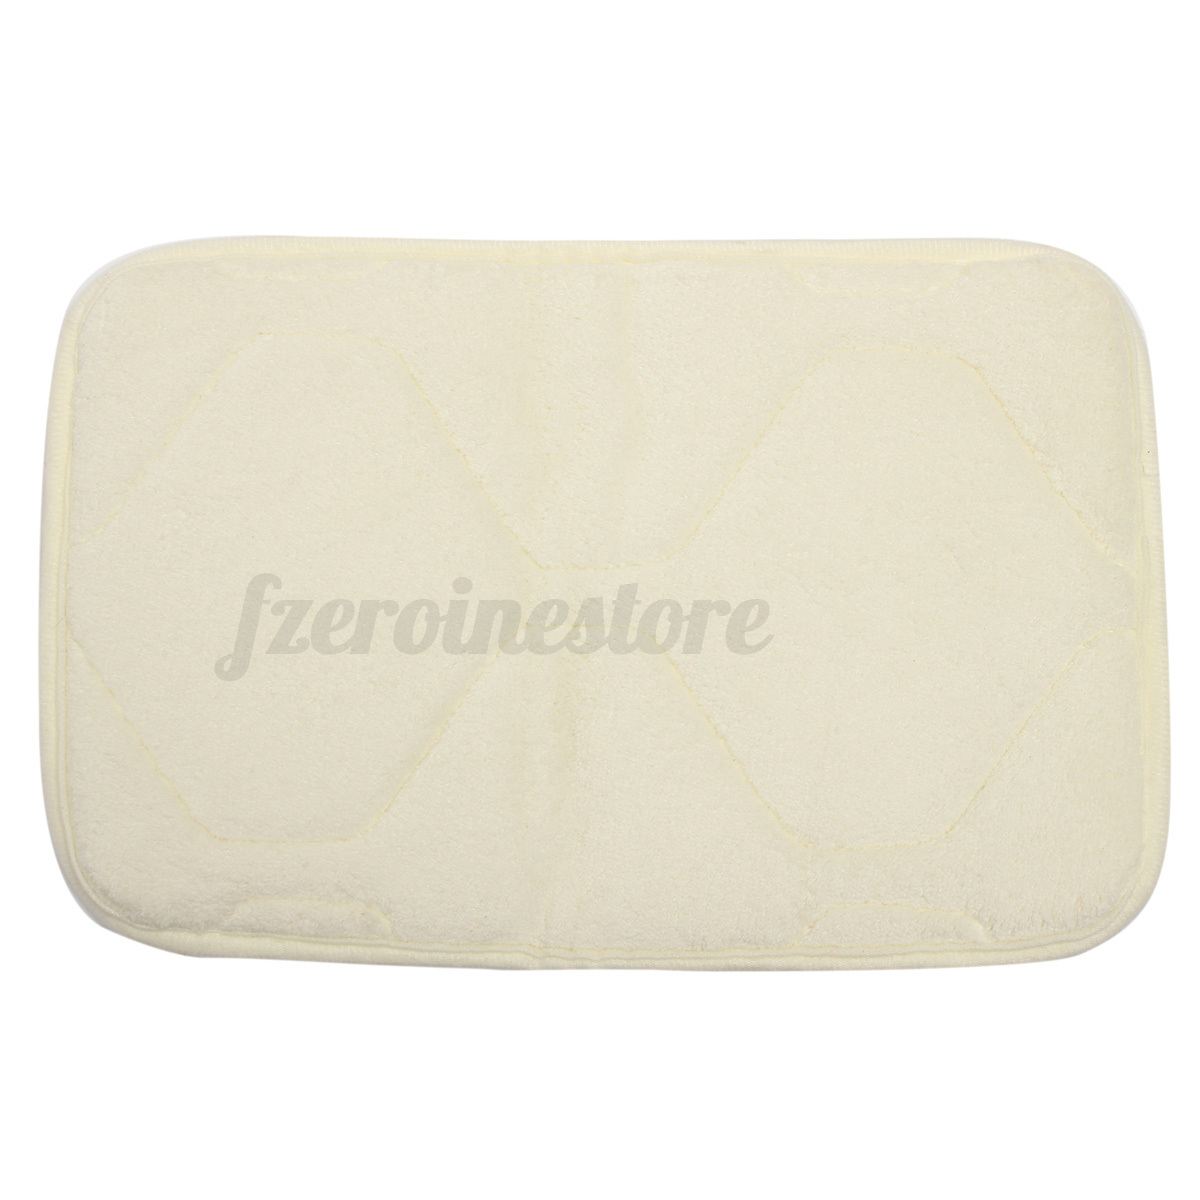 Non Slip Bathroom Mats Non Slip Soft Memory Foam Bath Bathroom Shower Door Floor